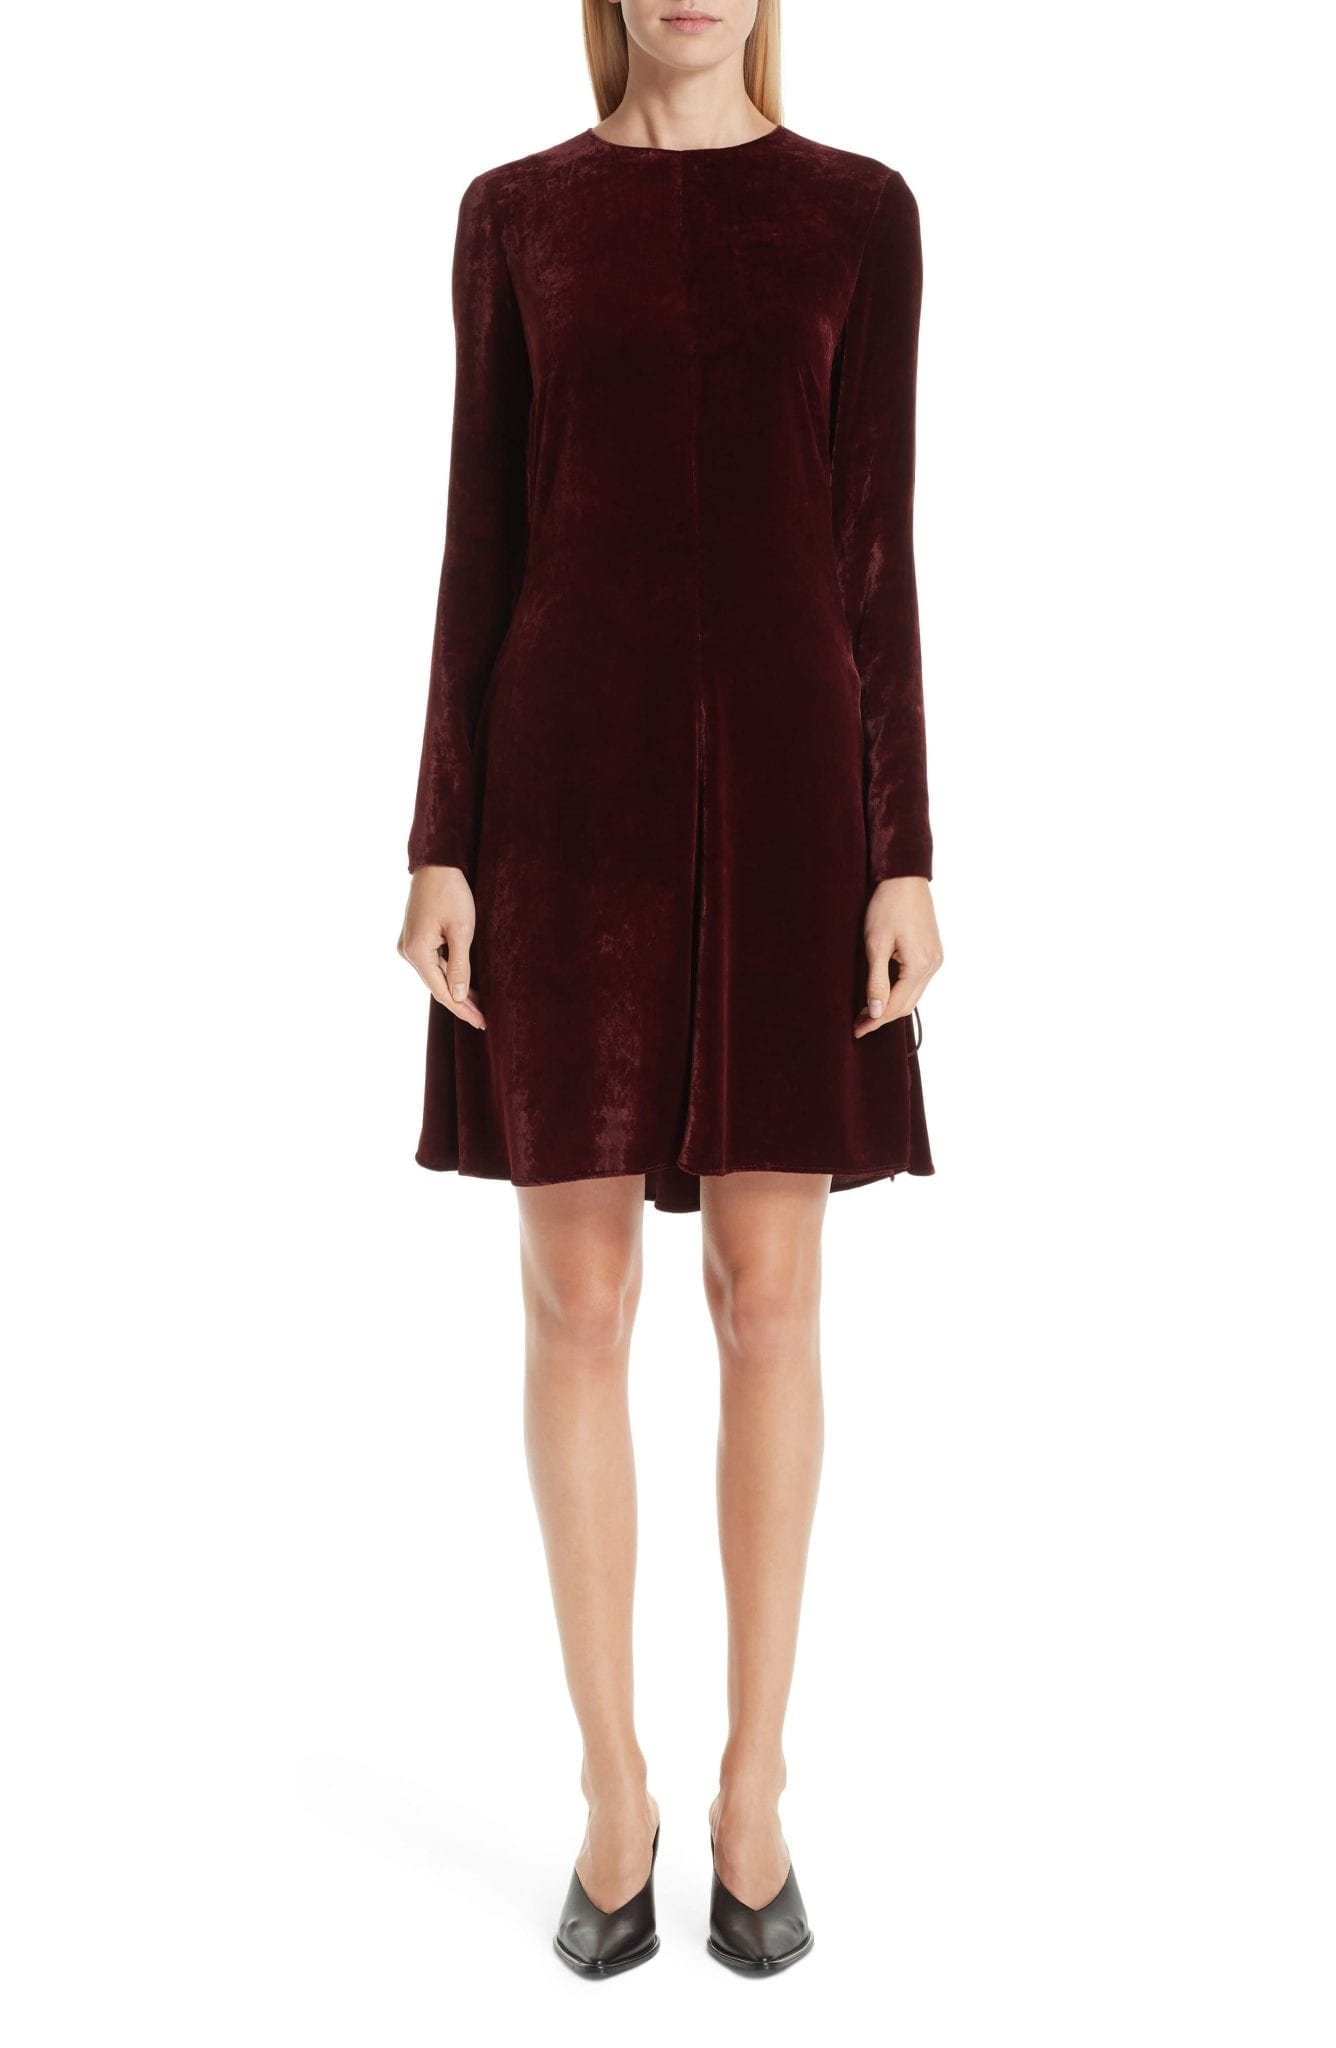 STELLA MCCARTNEY Lace-Up Side Velvet Burgundy Dress